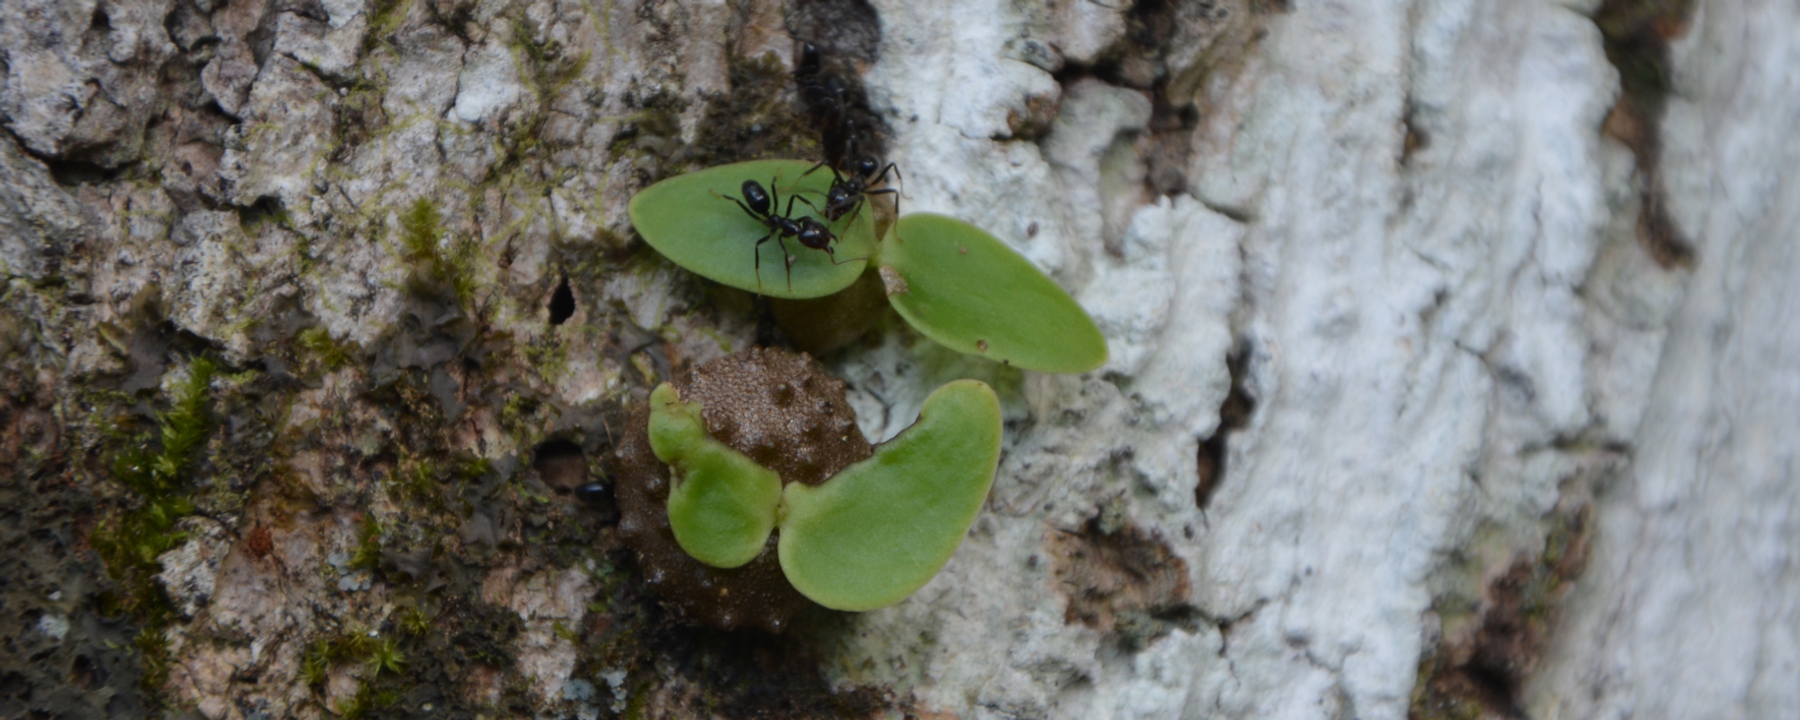 Image of the Day: Farming Ants